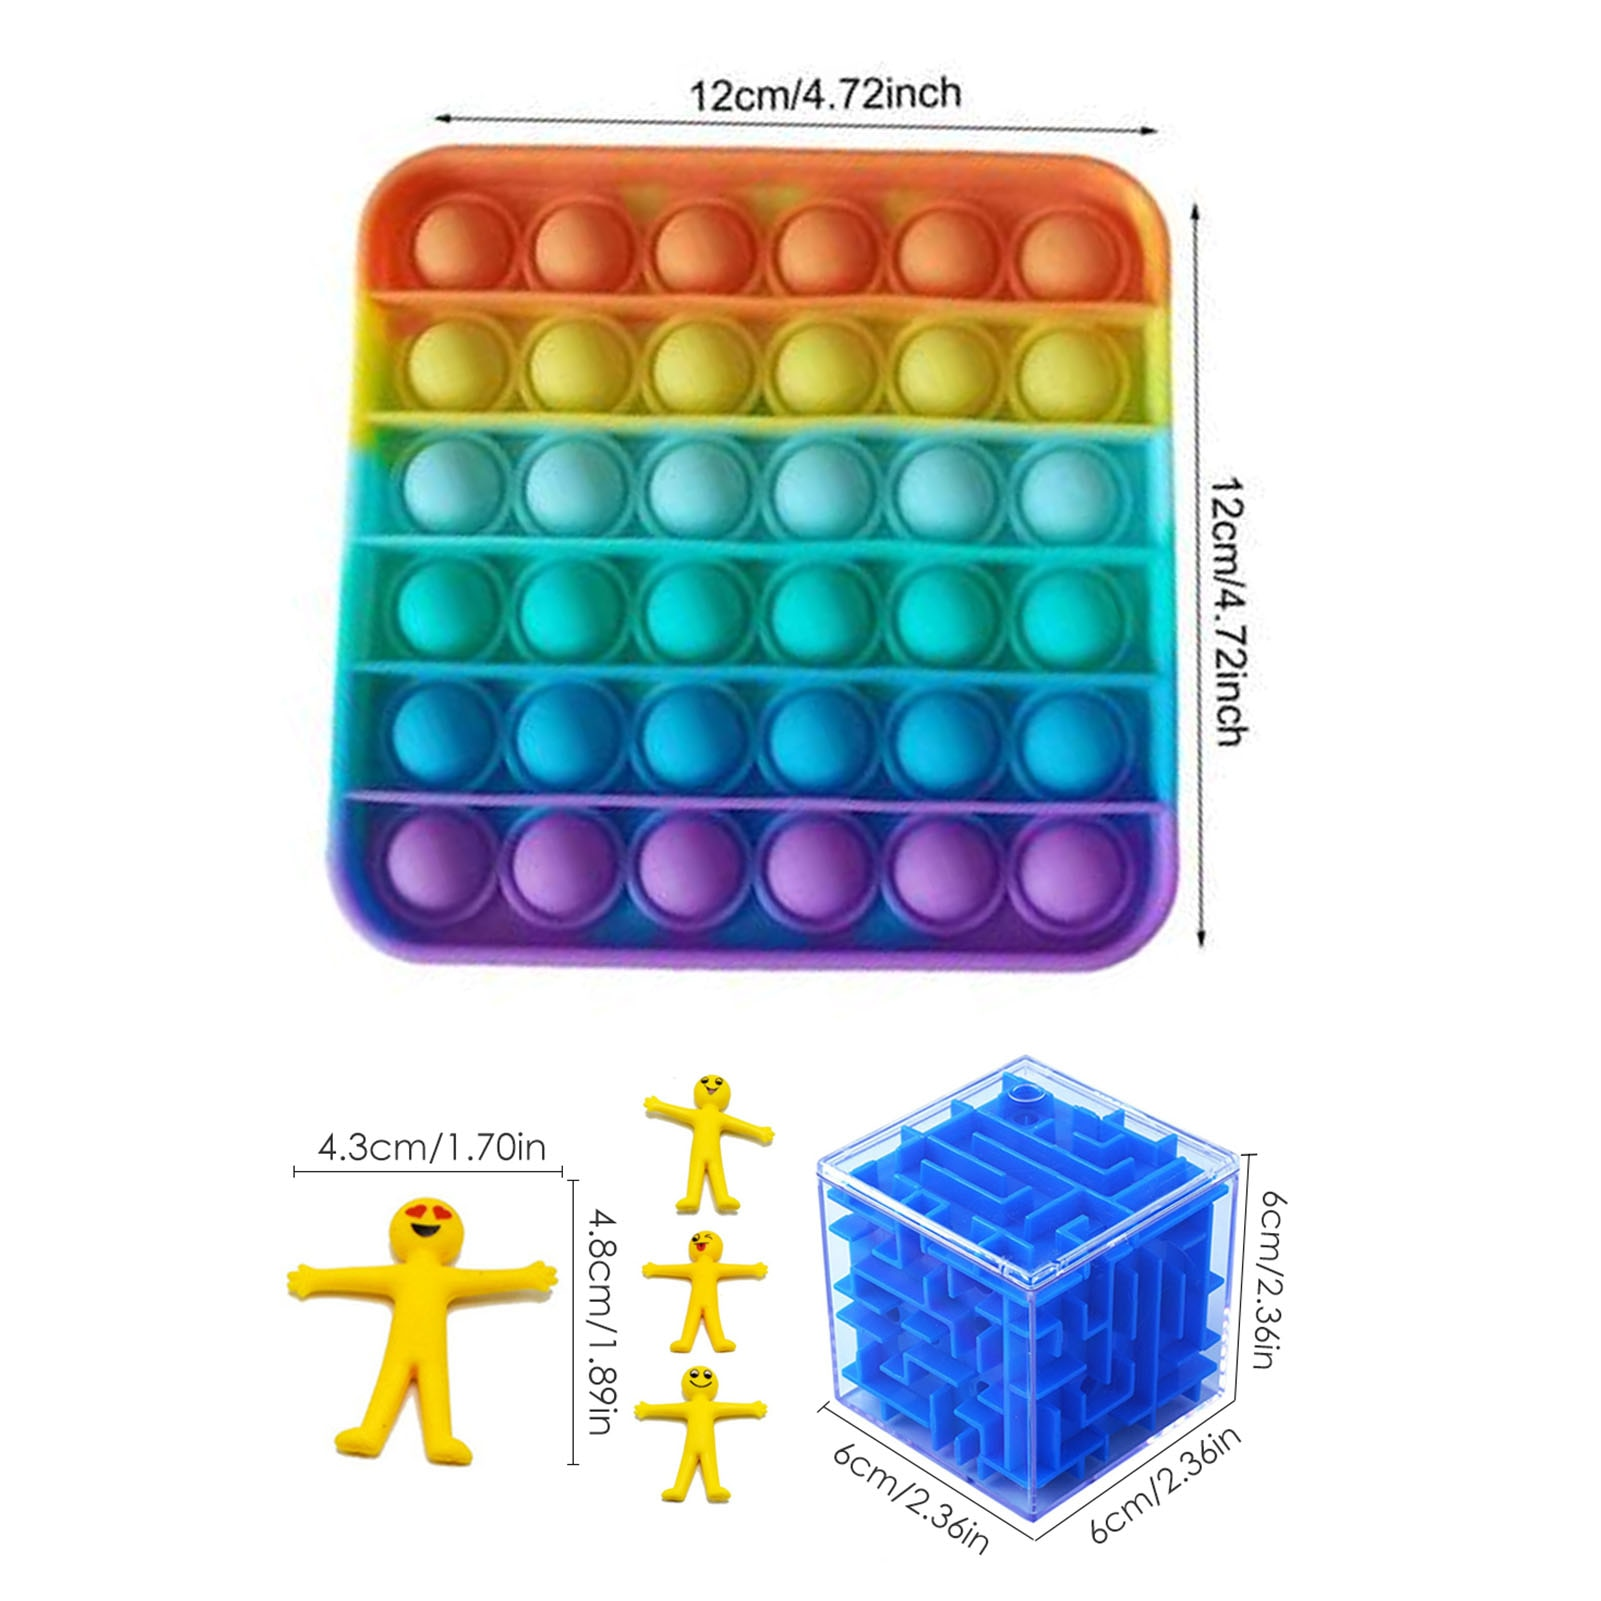 24 Pack Fidget Sensory Toy Set For Kids Adults Stress Relief Toy Autism Anxiety Relief Stress Push Pop Bubble Fidget Sensory Toy enlarge